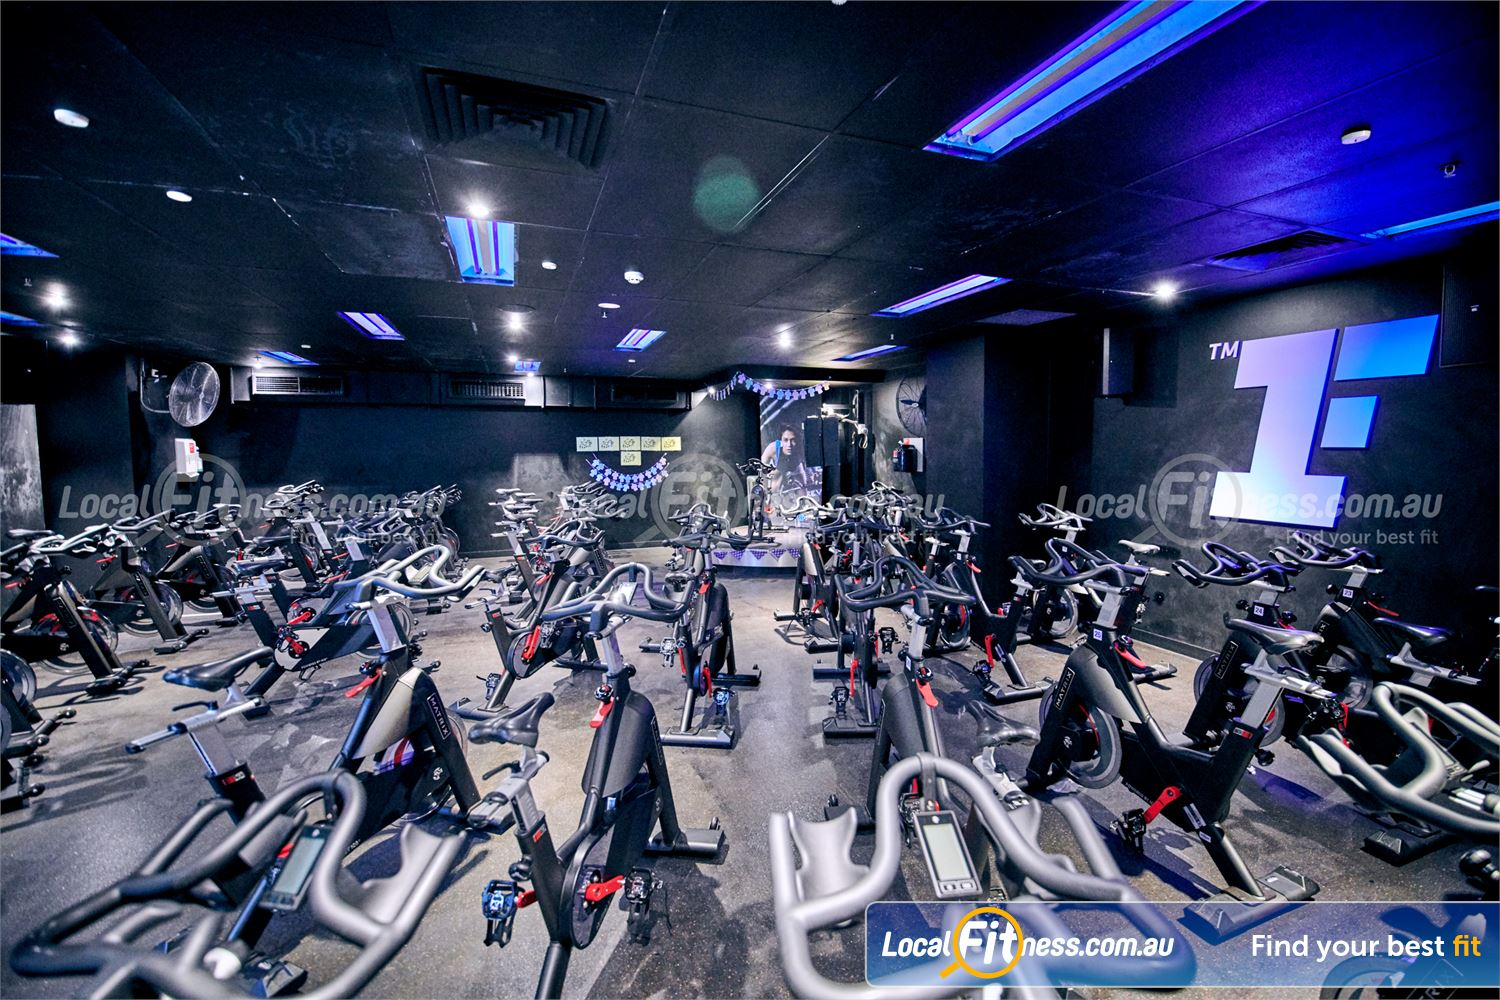 Fitness First Erina Fair Near Picketts Valley The dedicated Erina Fair spin cycle studio is a great way to burn calories fast.